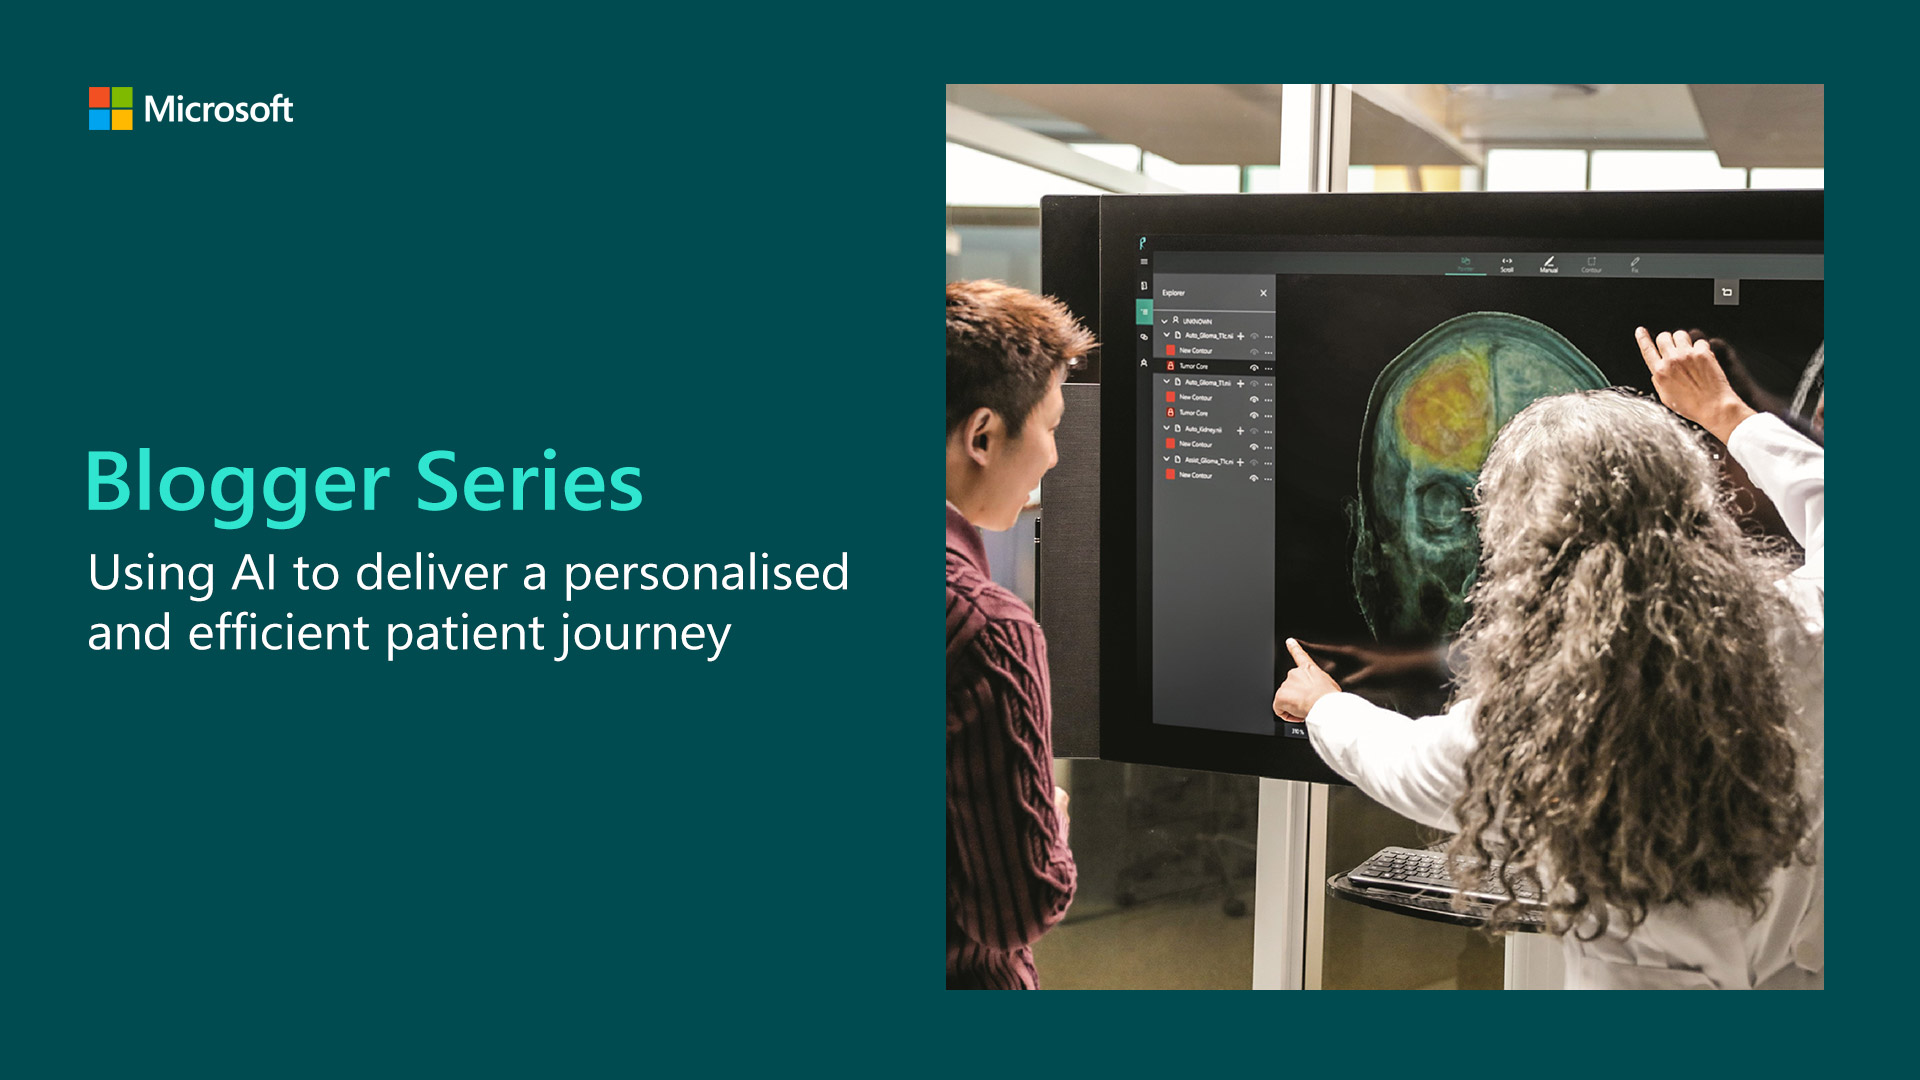 Blogger Series banner showing AI being used in the healthcare setting